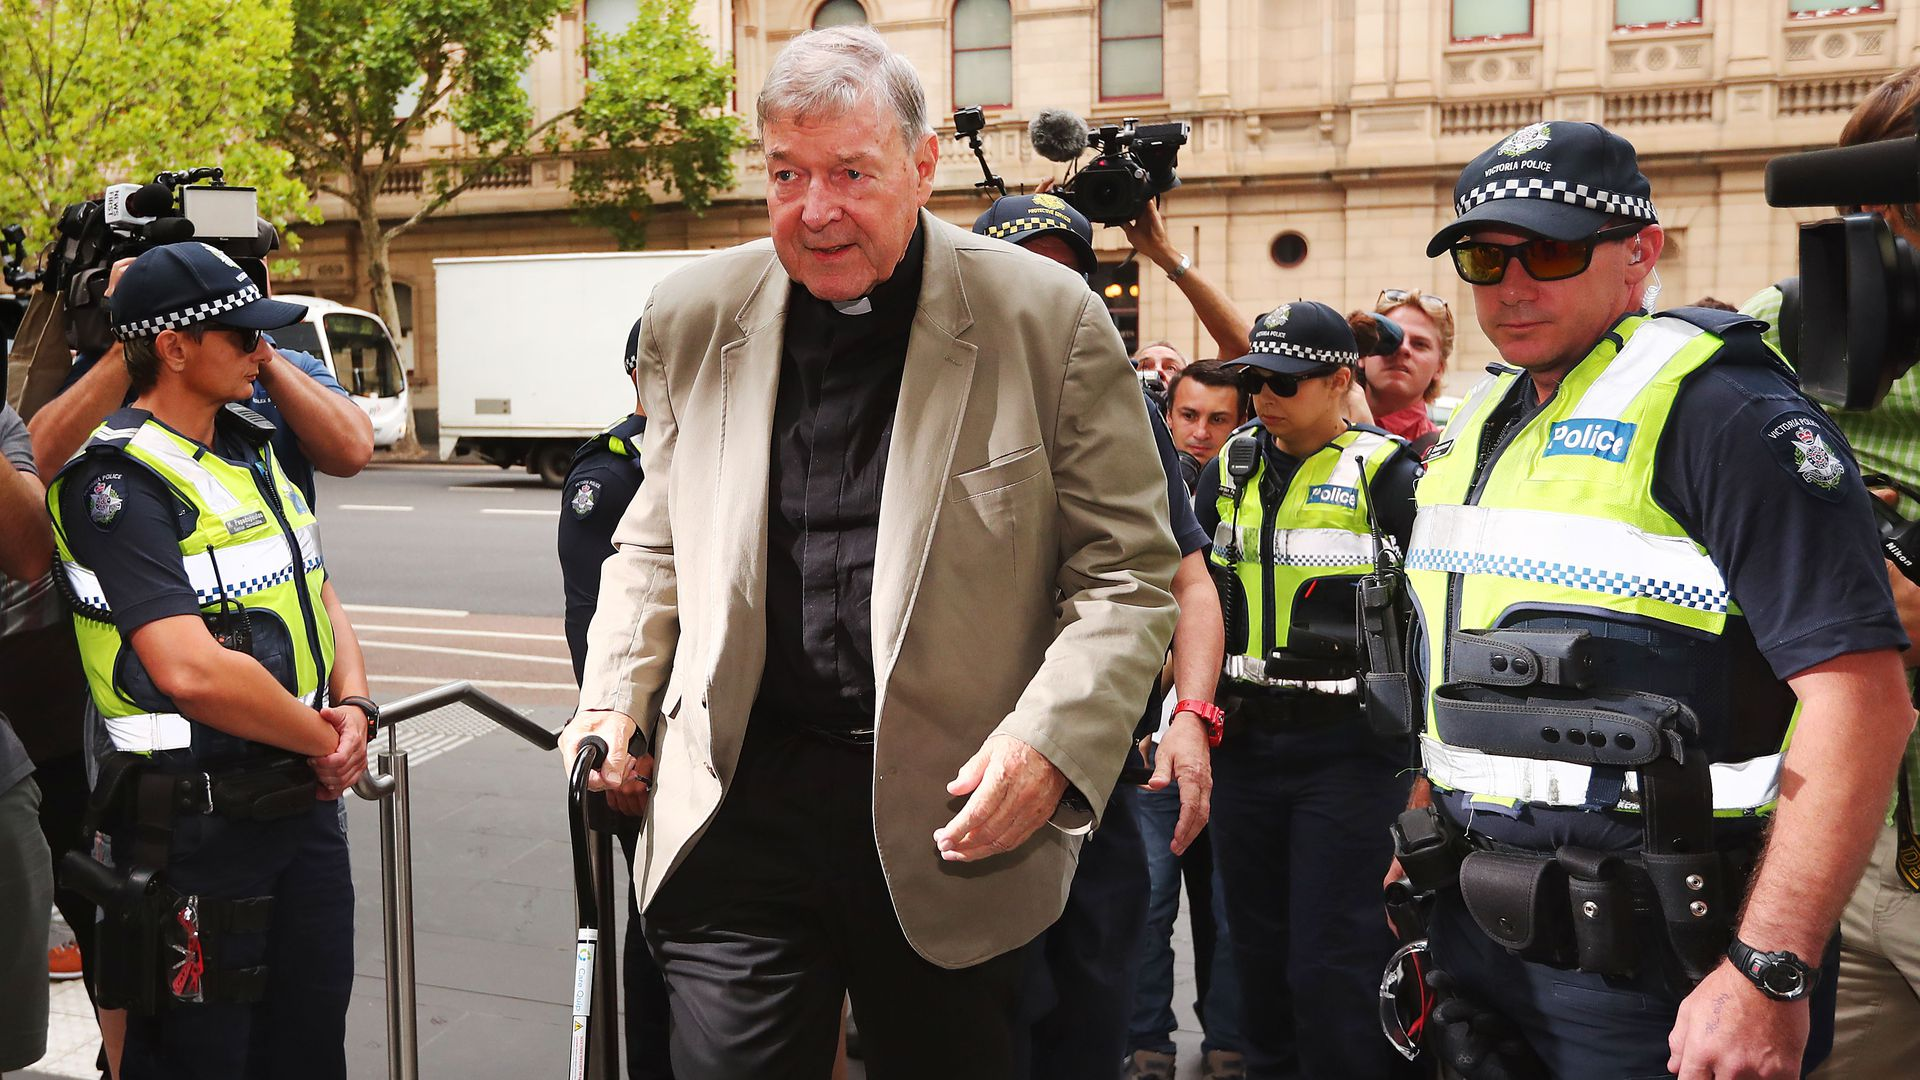 Cardinal George Pell at the County Court last month in Melbourne, Australia.